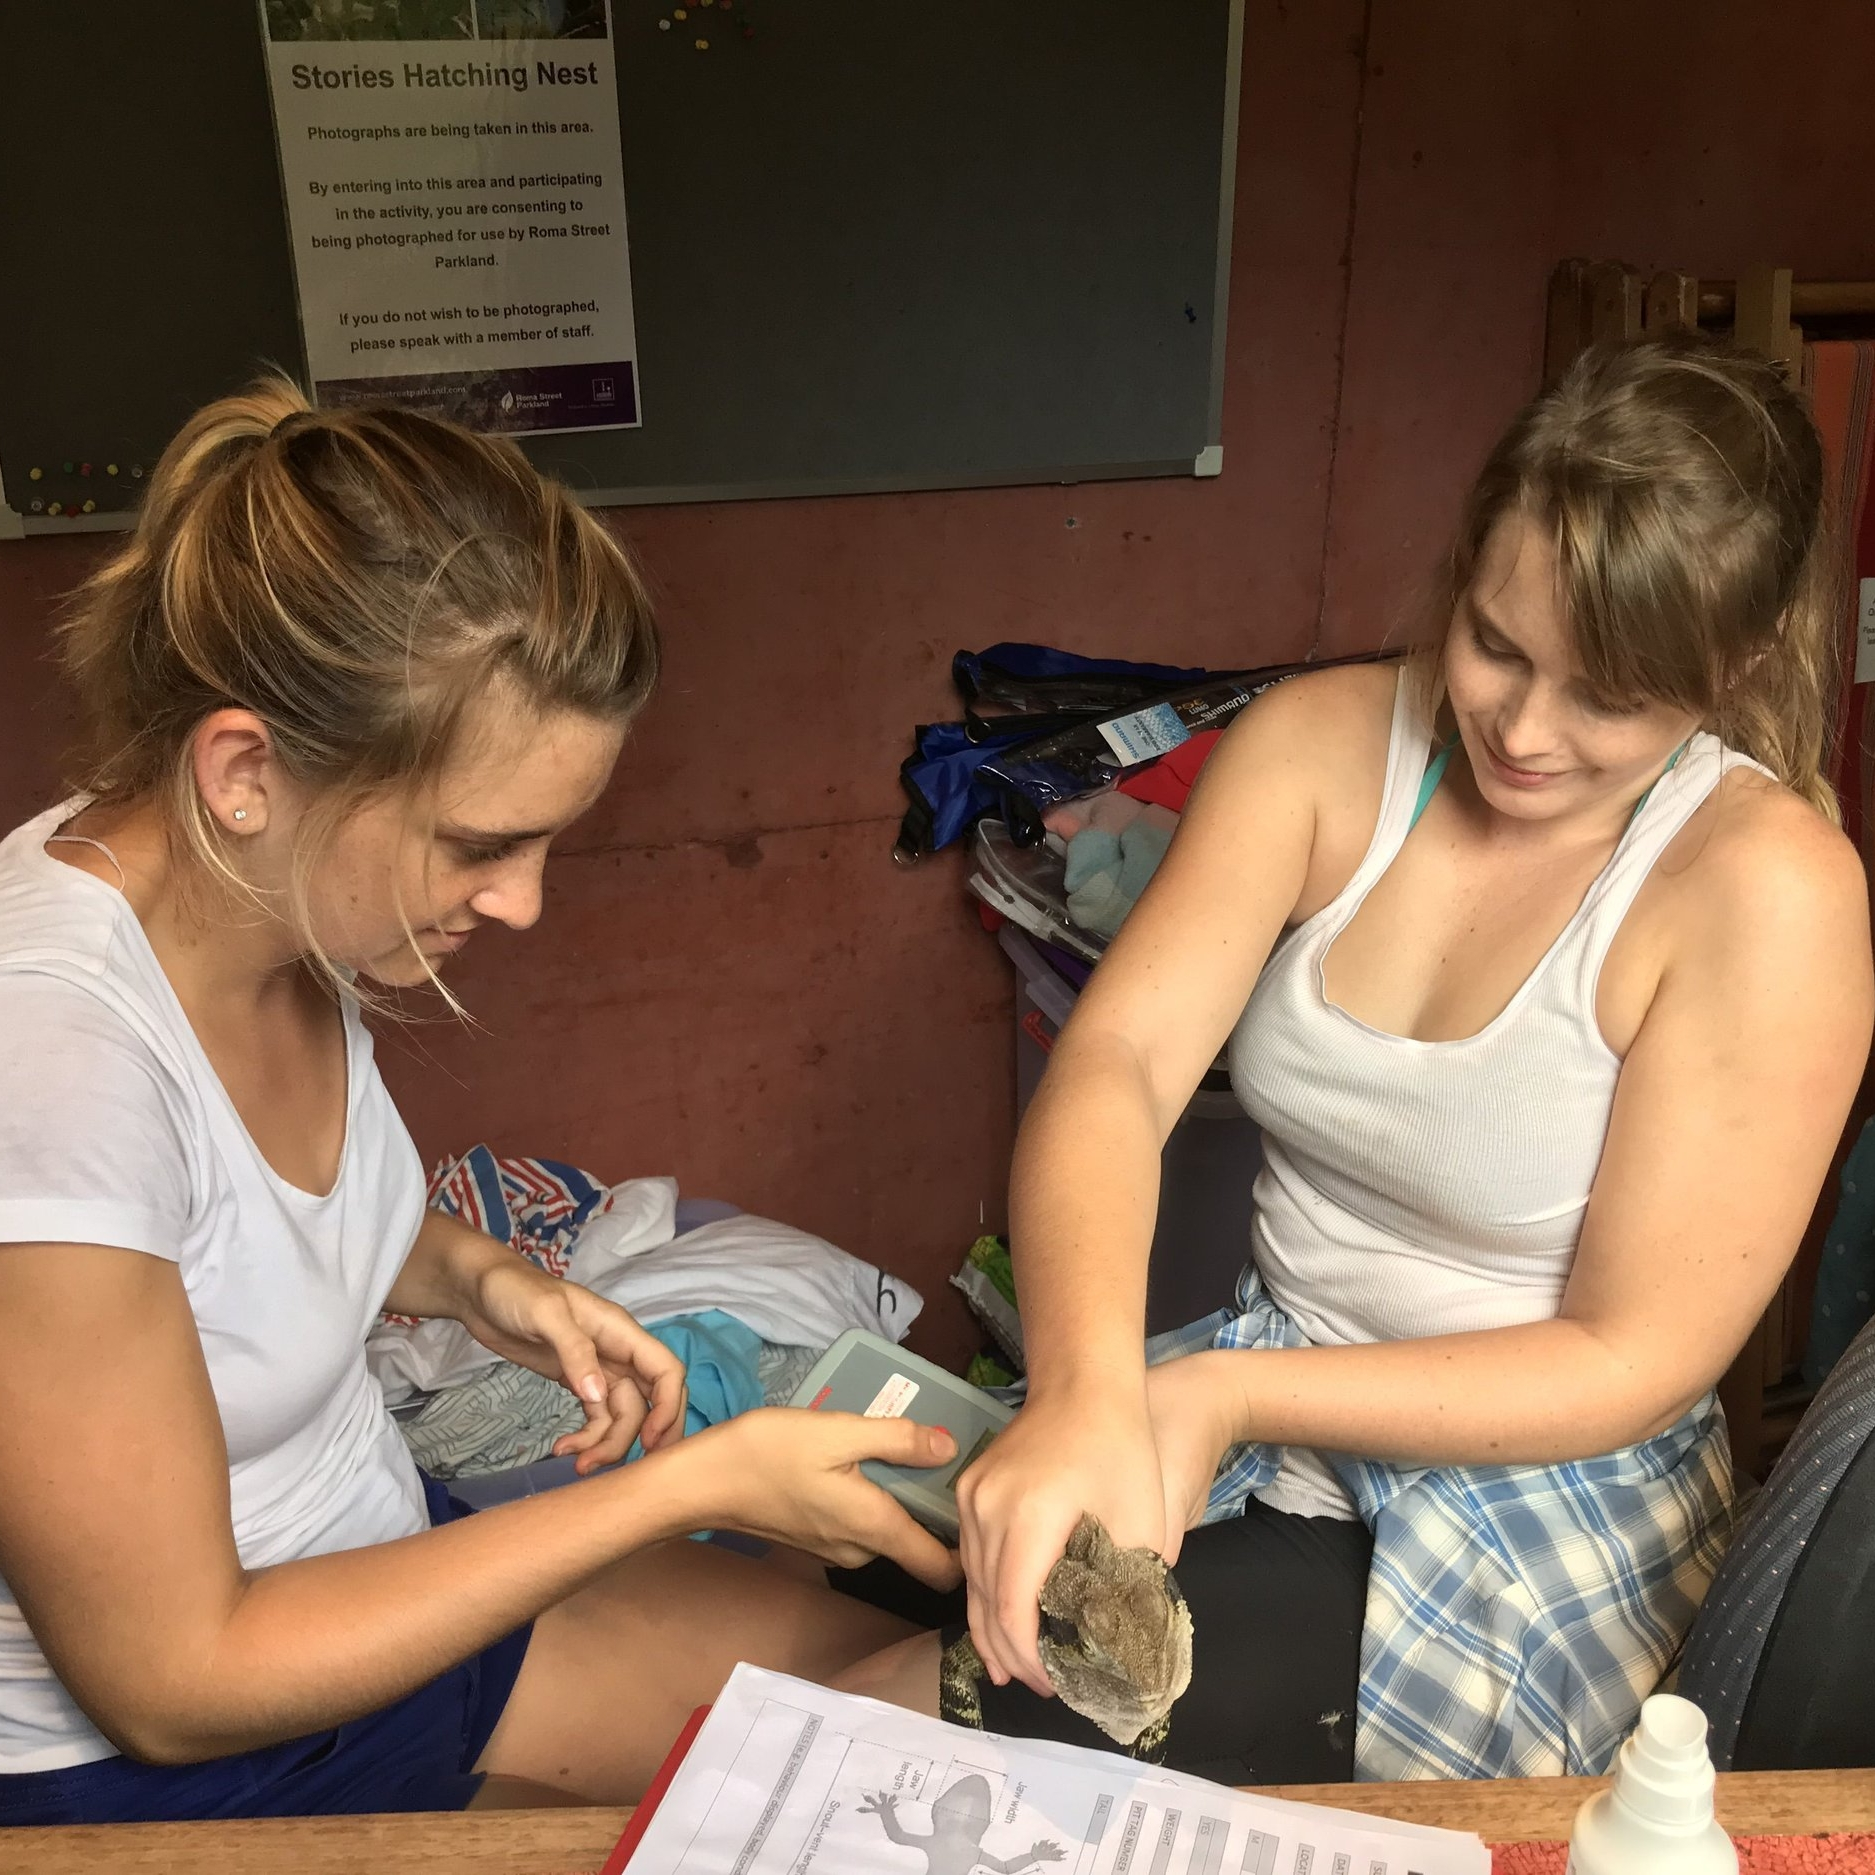 Nicola (left) and Sarah (right) checking for a microchip in a dragon.